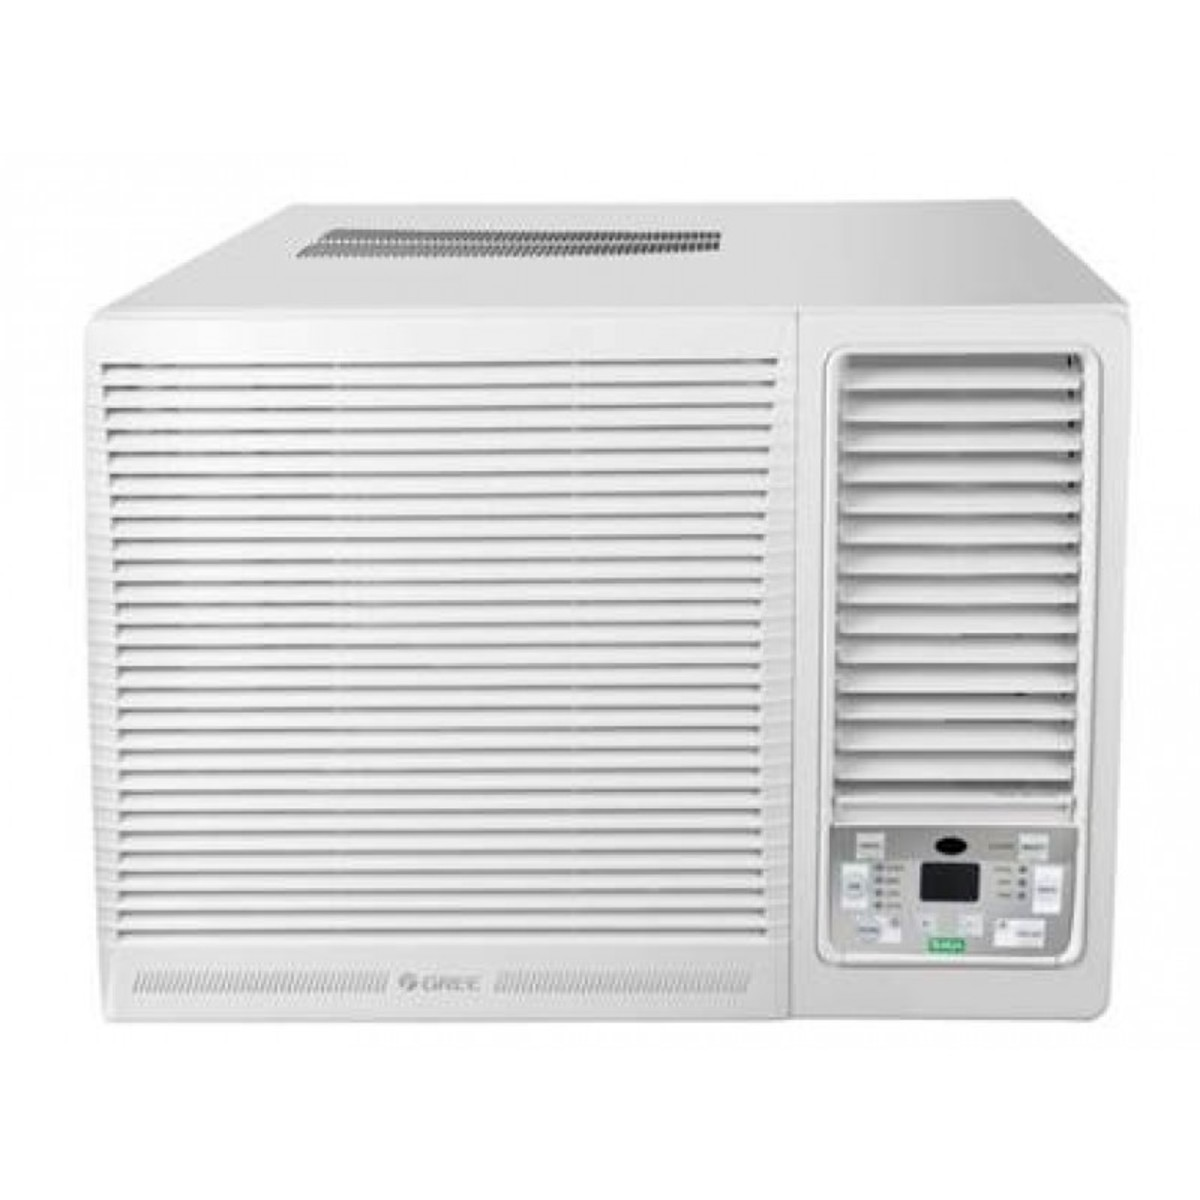 G1818VR 2.0HP Window Type Air Conditioner with Remote Control